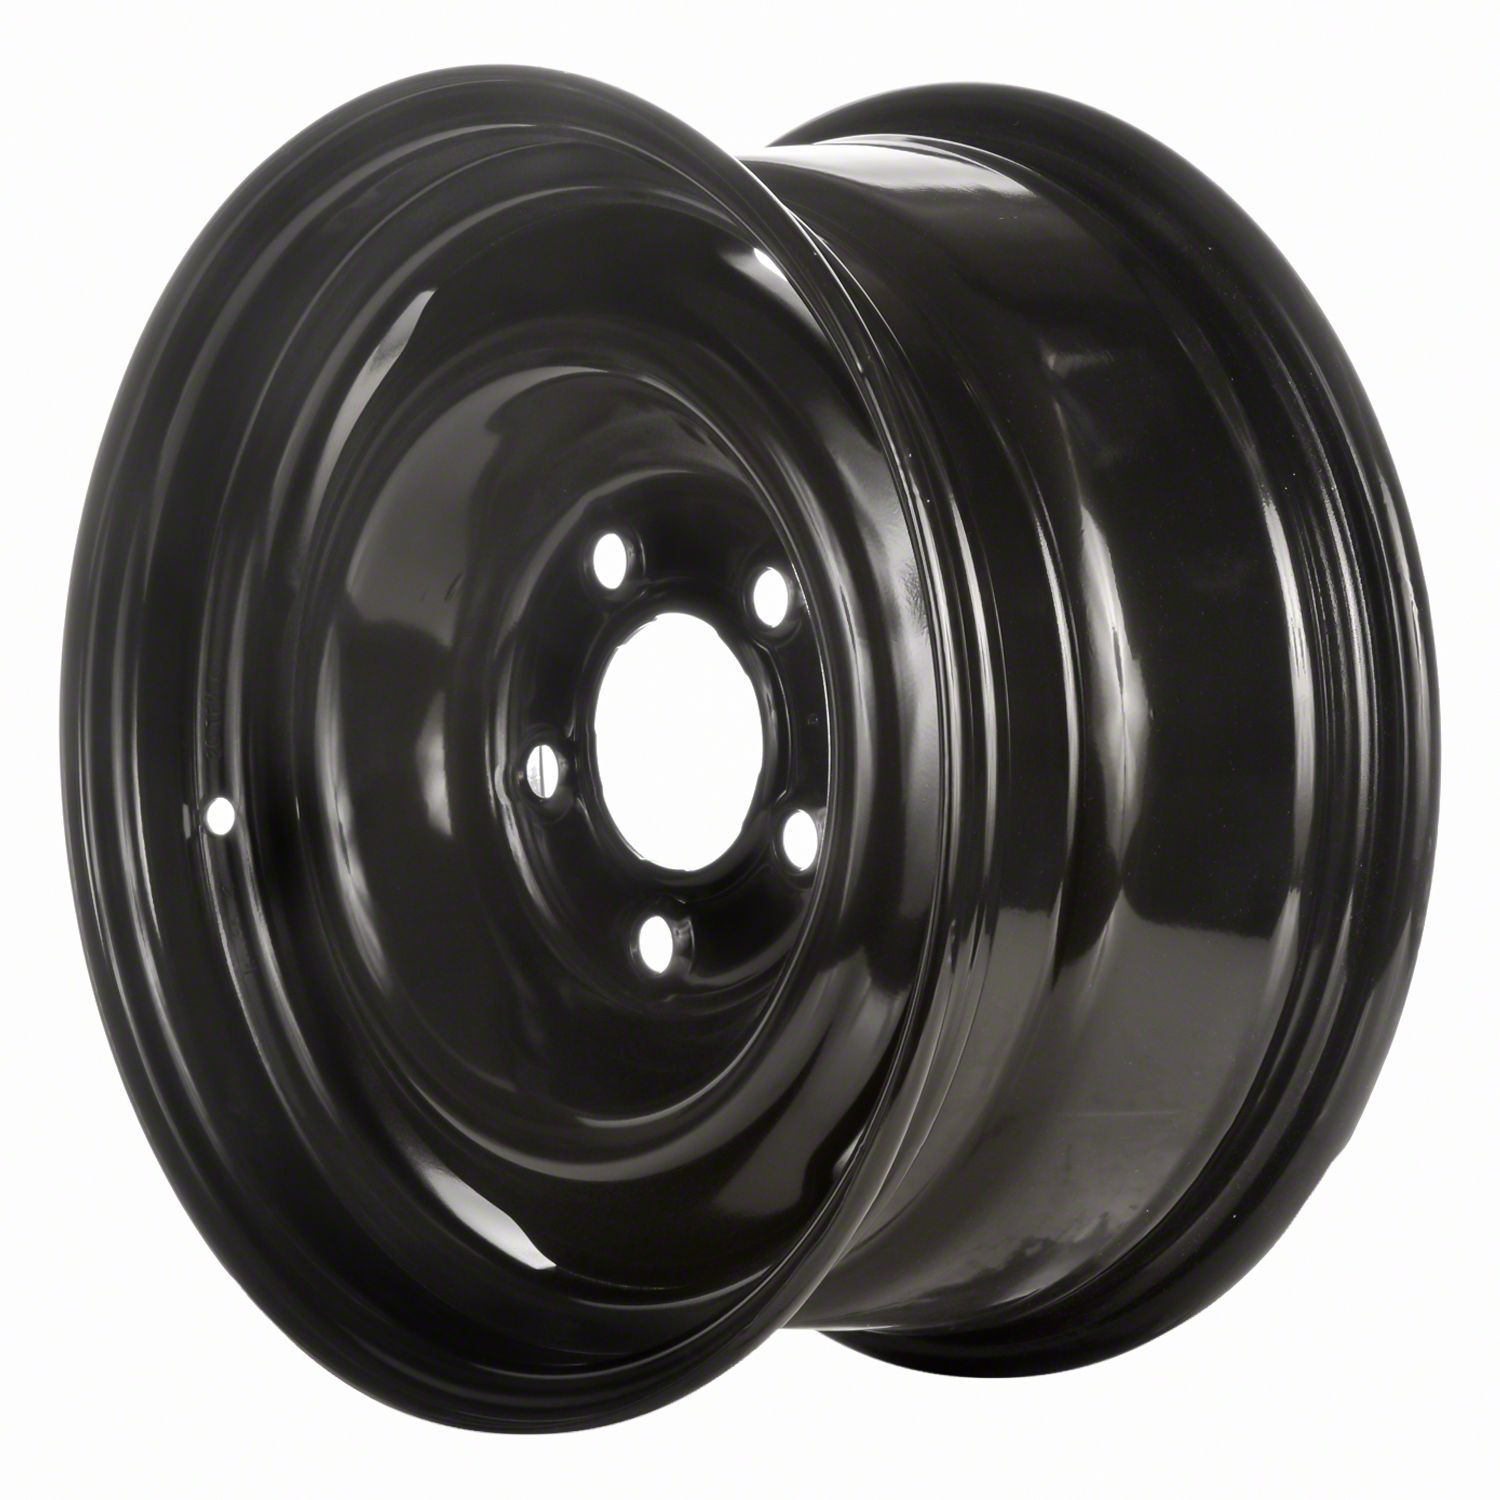 Details about 01616 Reconditioned OEM Steel wheel, 15x7